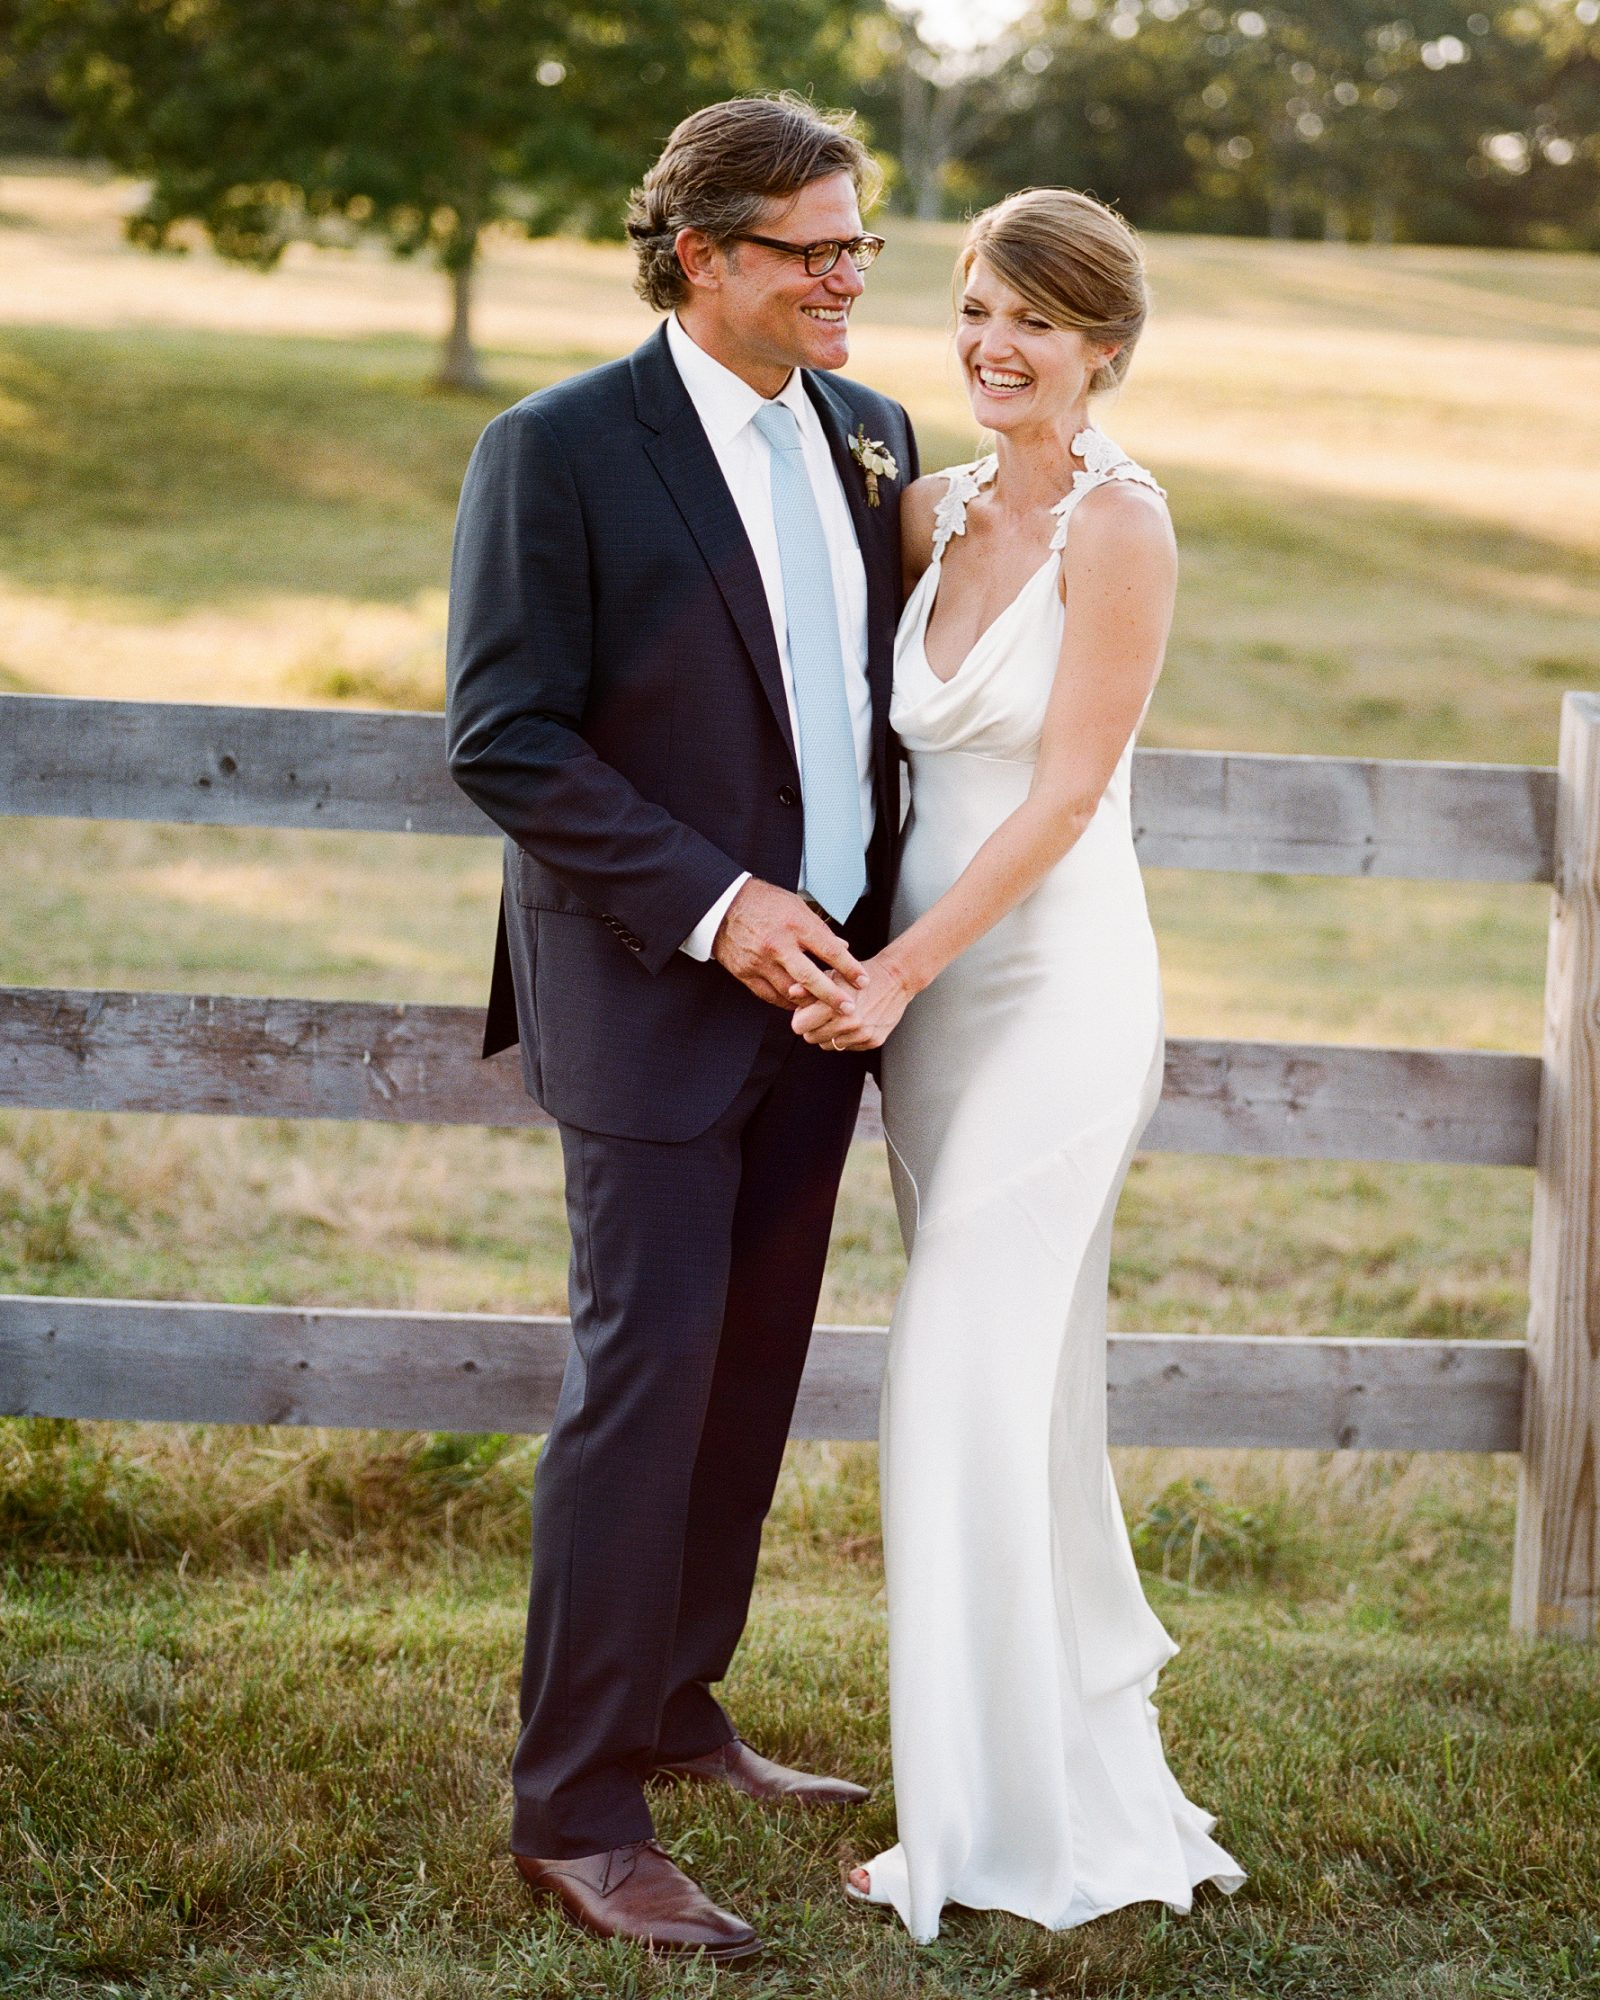 jocelyn-graham-wedding-couple-1157-s111847-0315.jpg